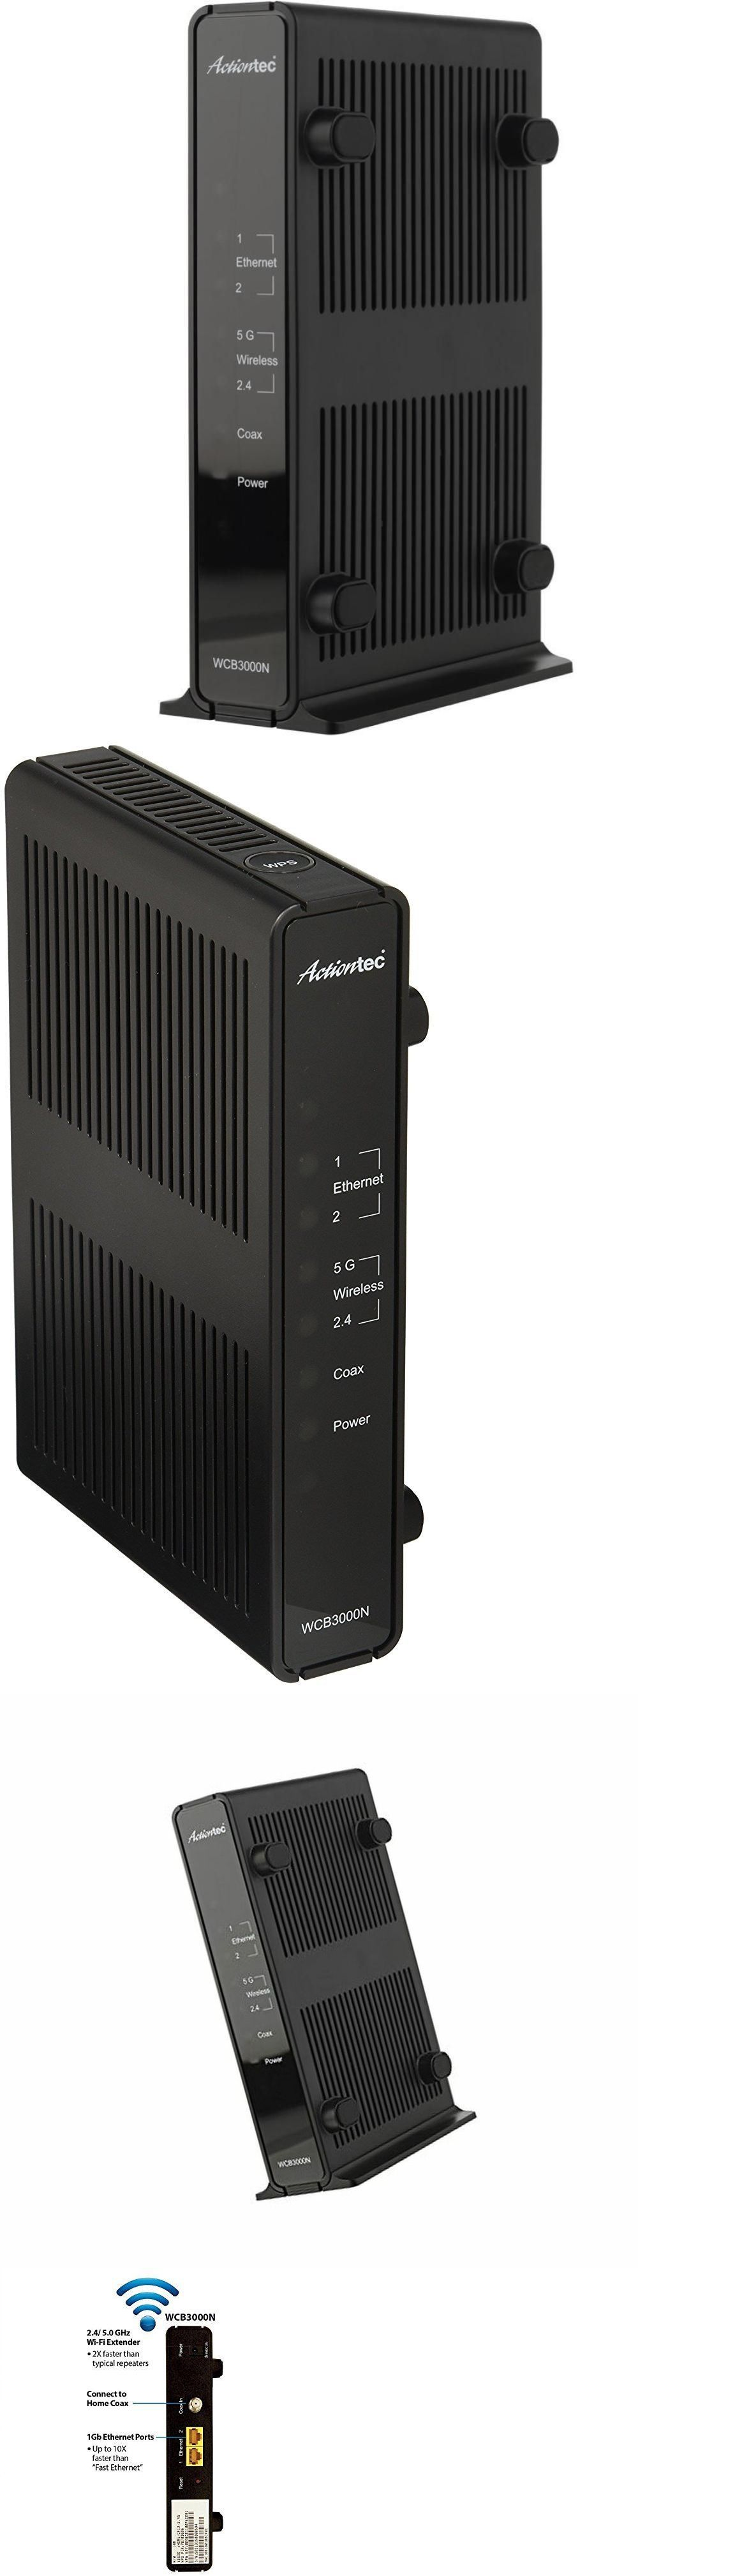 Dual Band Wireless Network Extender with MoCA /& Gigabit Actiontec WCB3000N